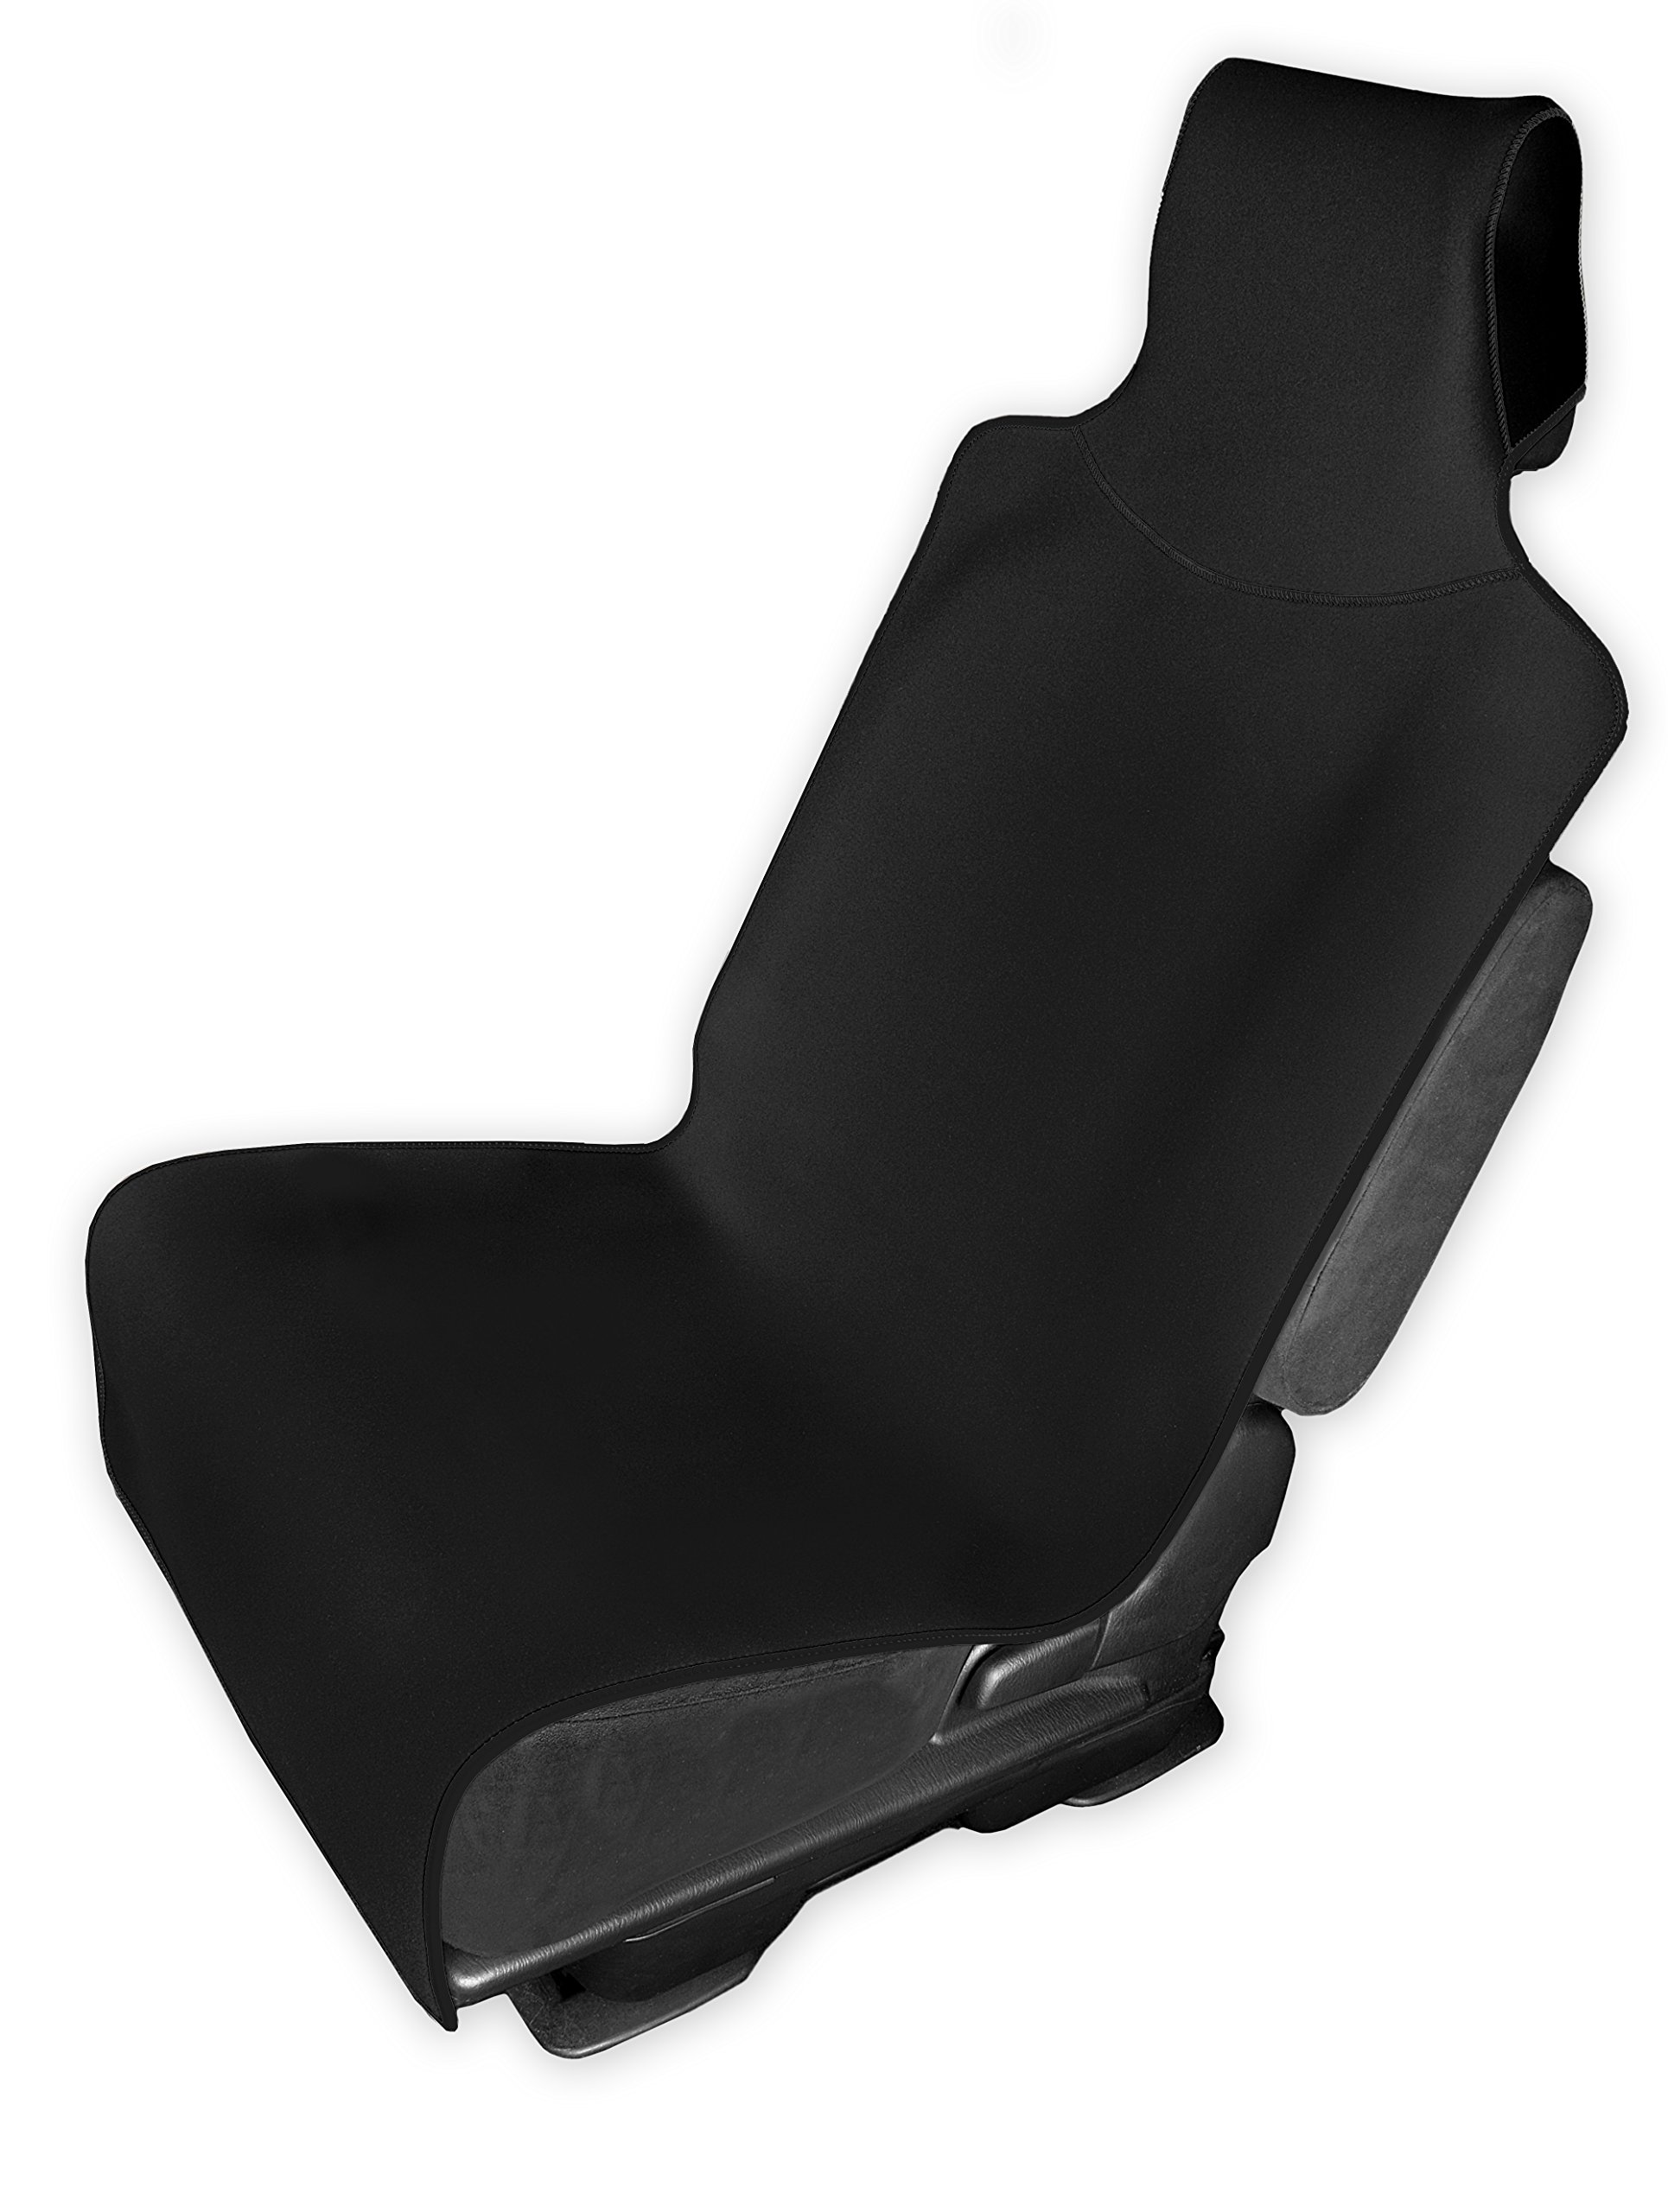 Seat Cover Universal Fit Waterproof Protector Non Slip by SkyRox